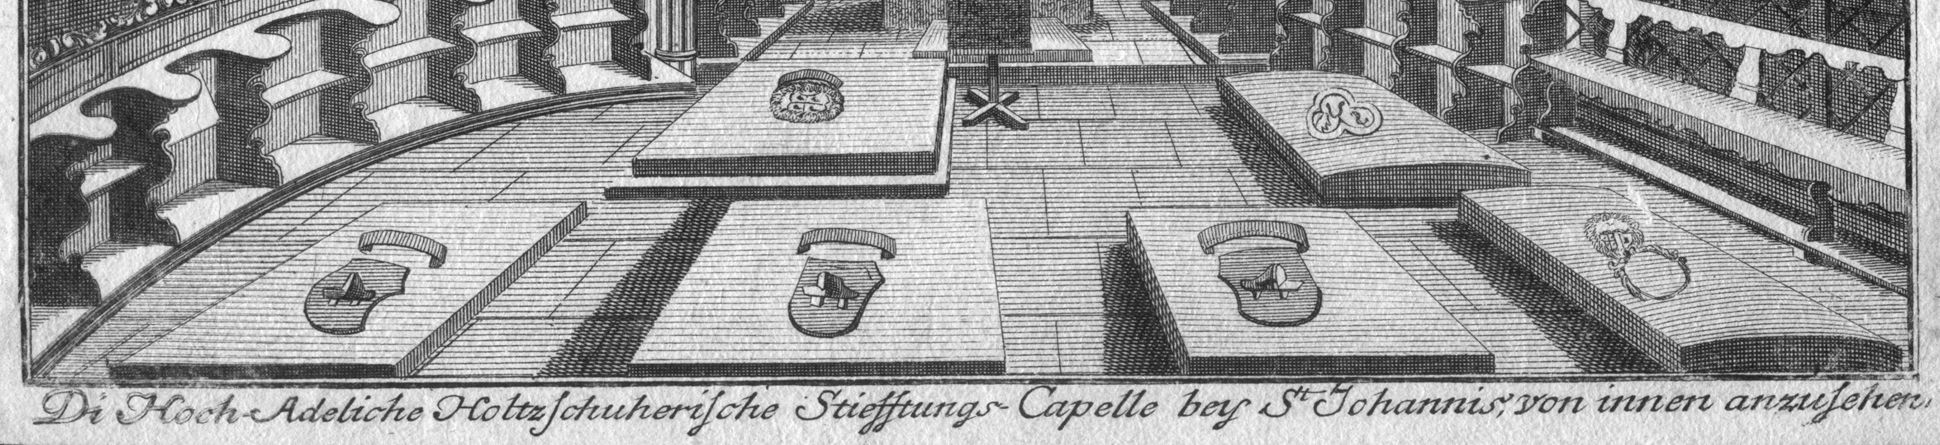 """The Holzschuher Collegiate Chapel of the Higher nobility…"" Chapel floor and image caption"